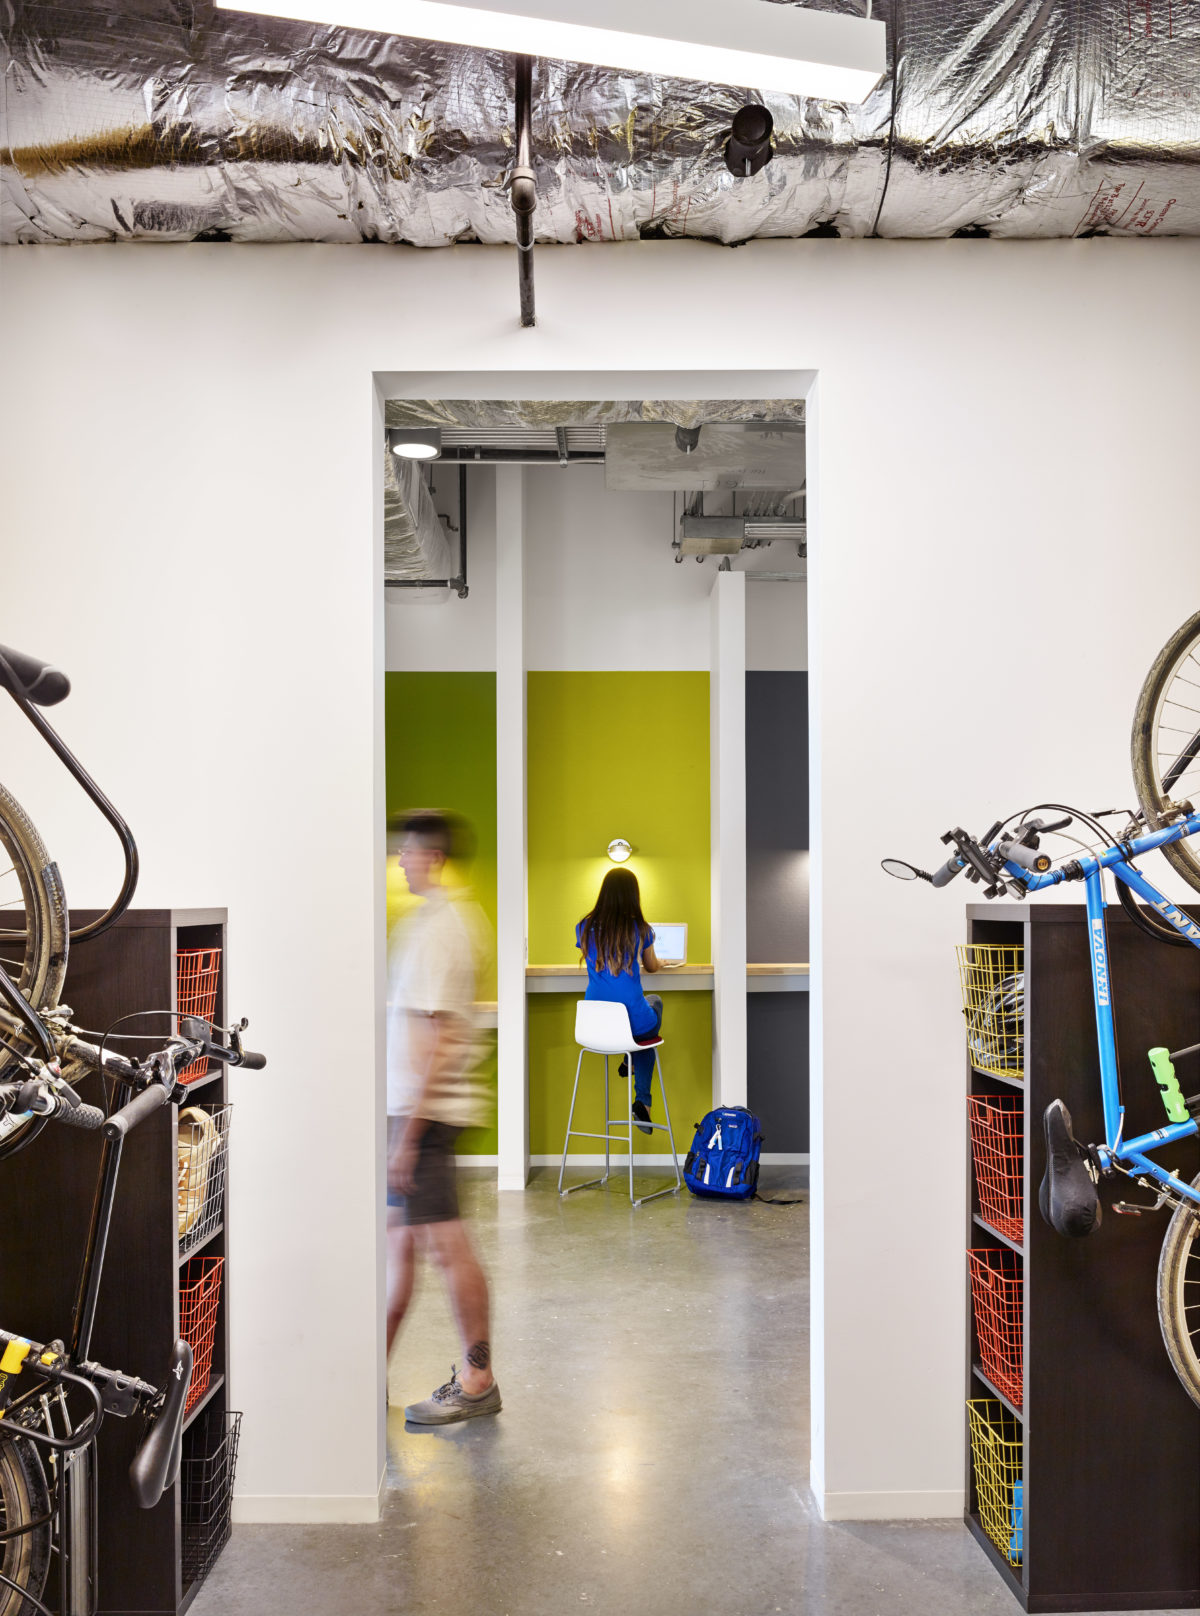 Image of the Atlassian Bike Storage